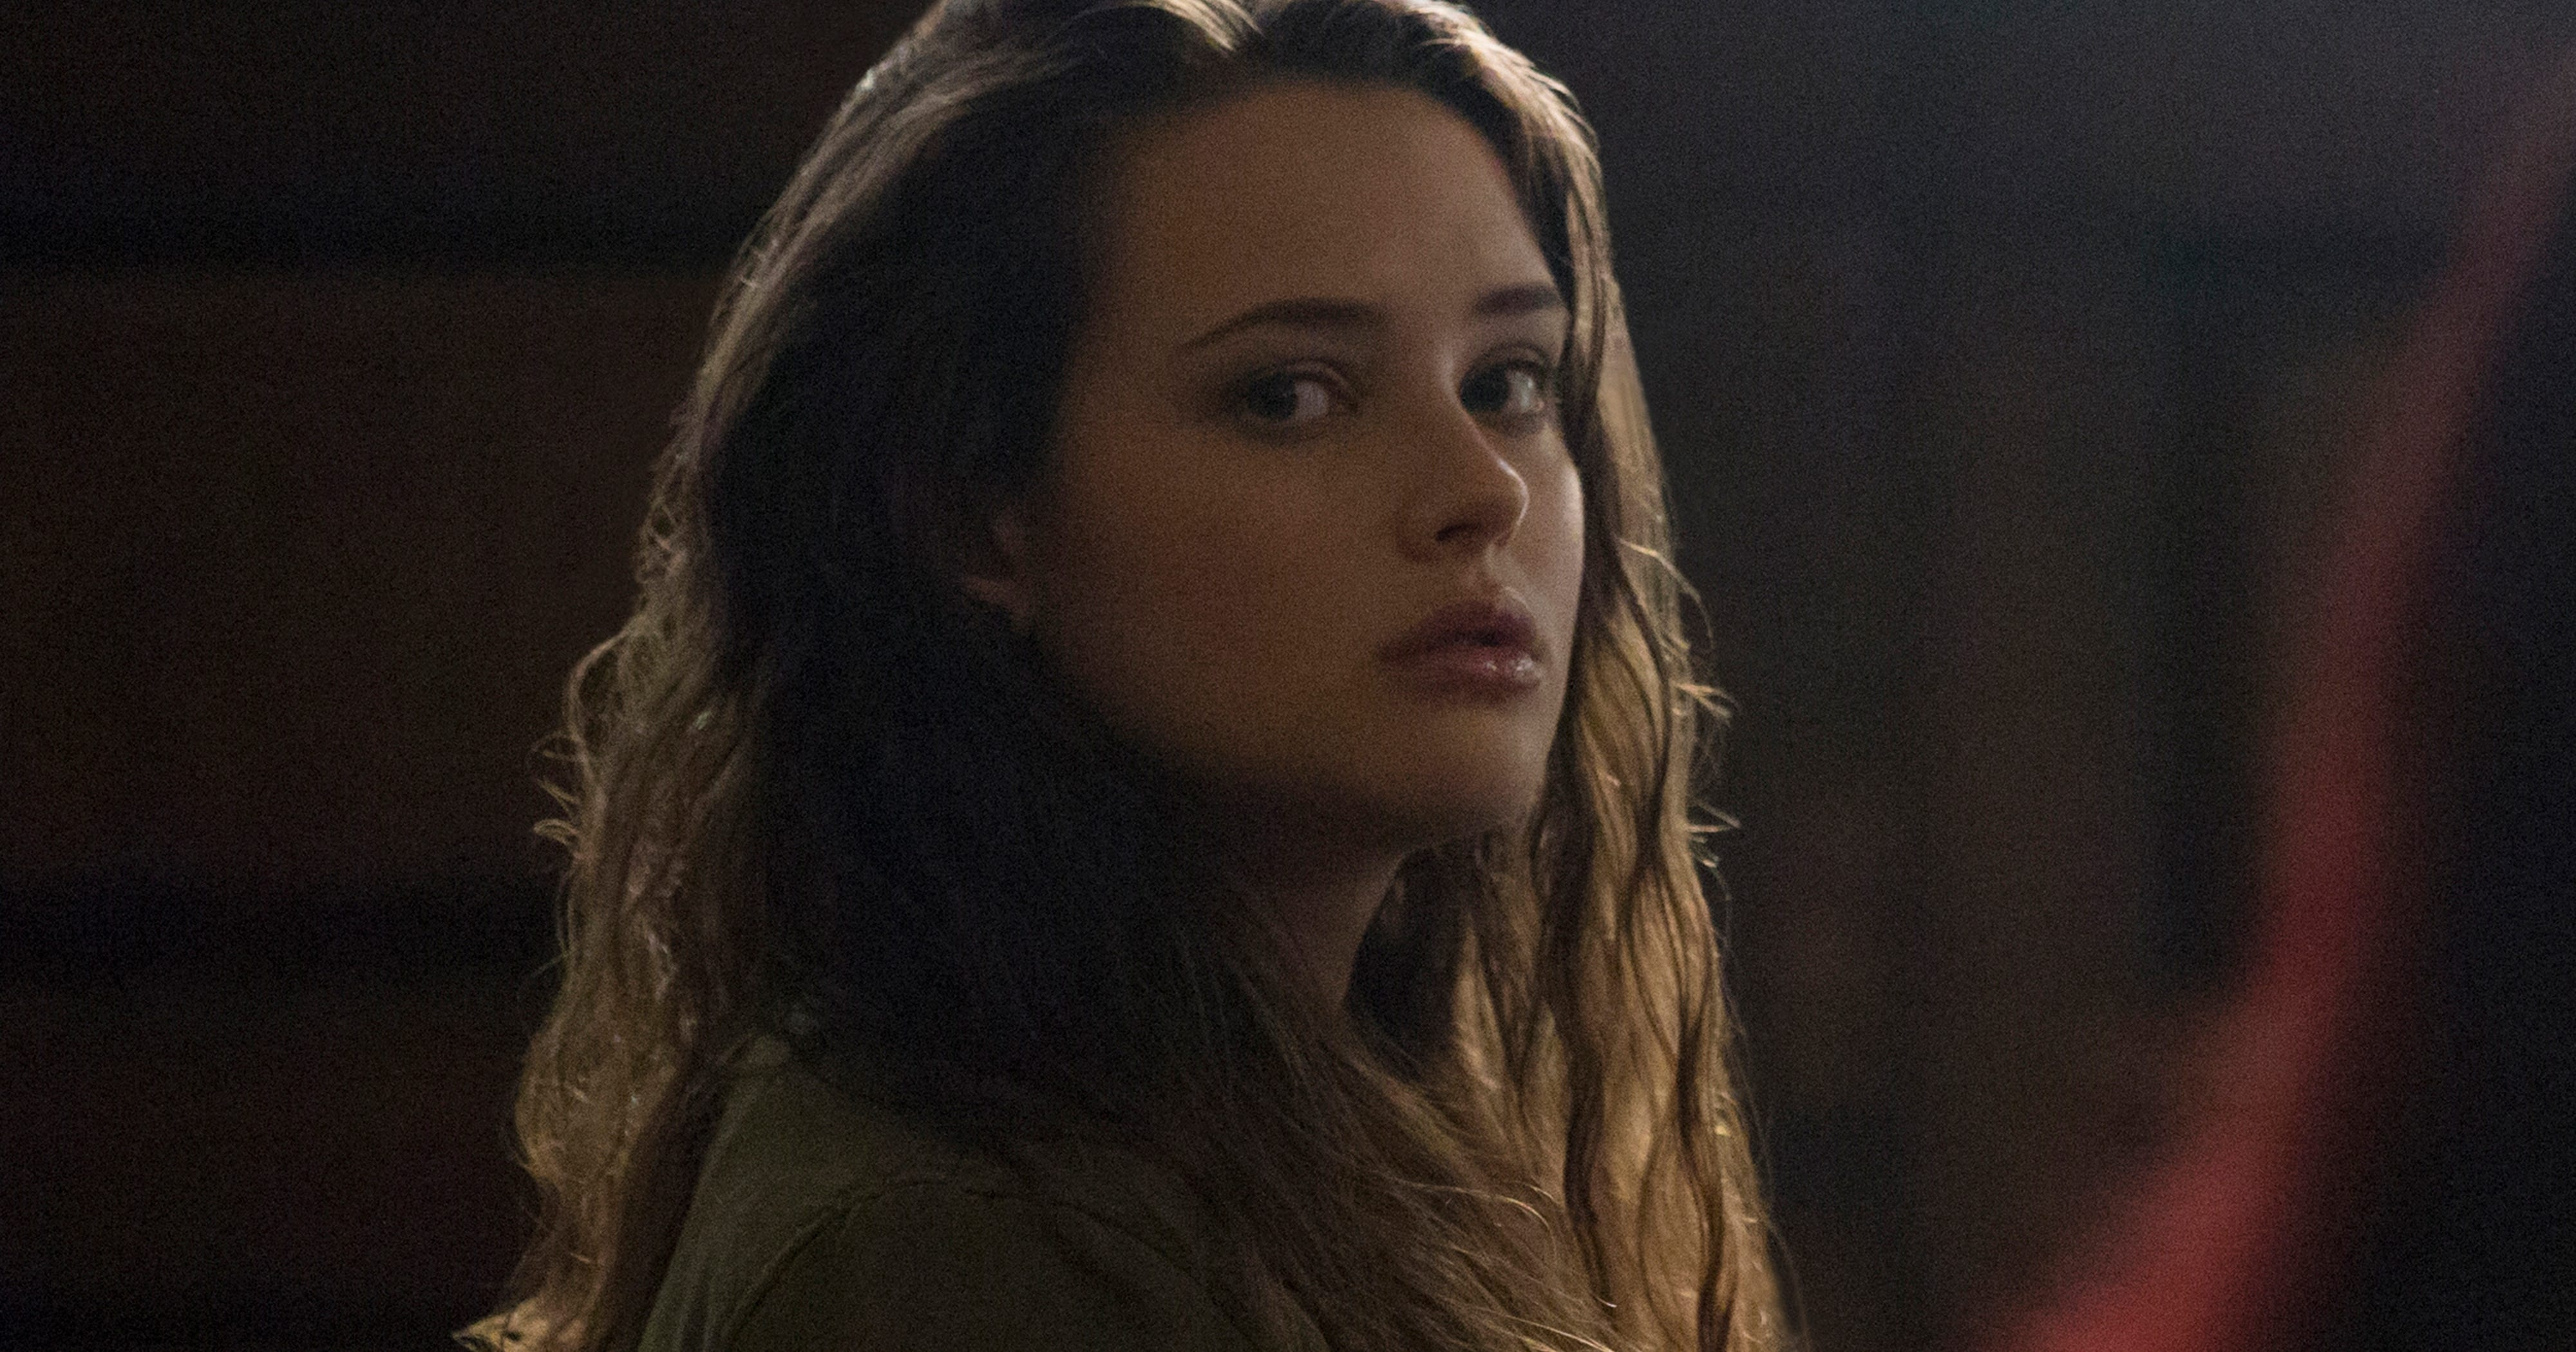 13 Reasons Why Removes Hannah's Shocking & Graphic Death From Show